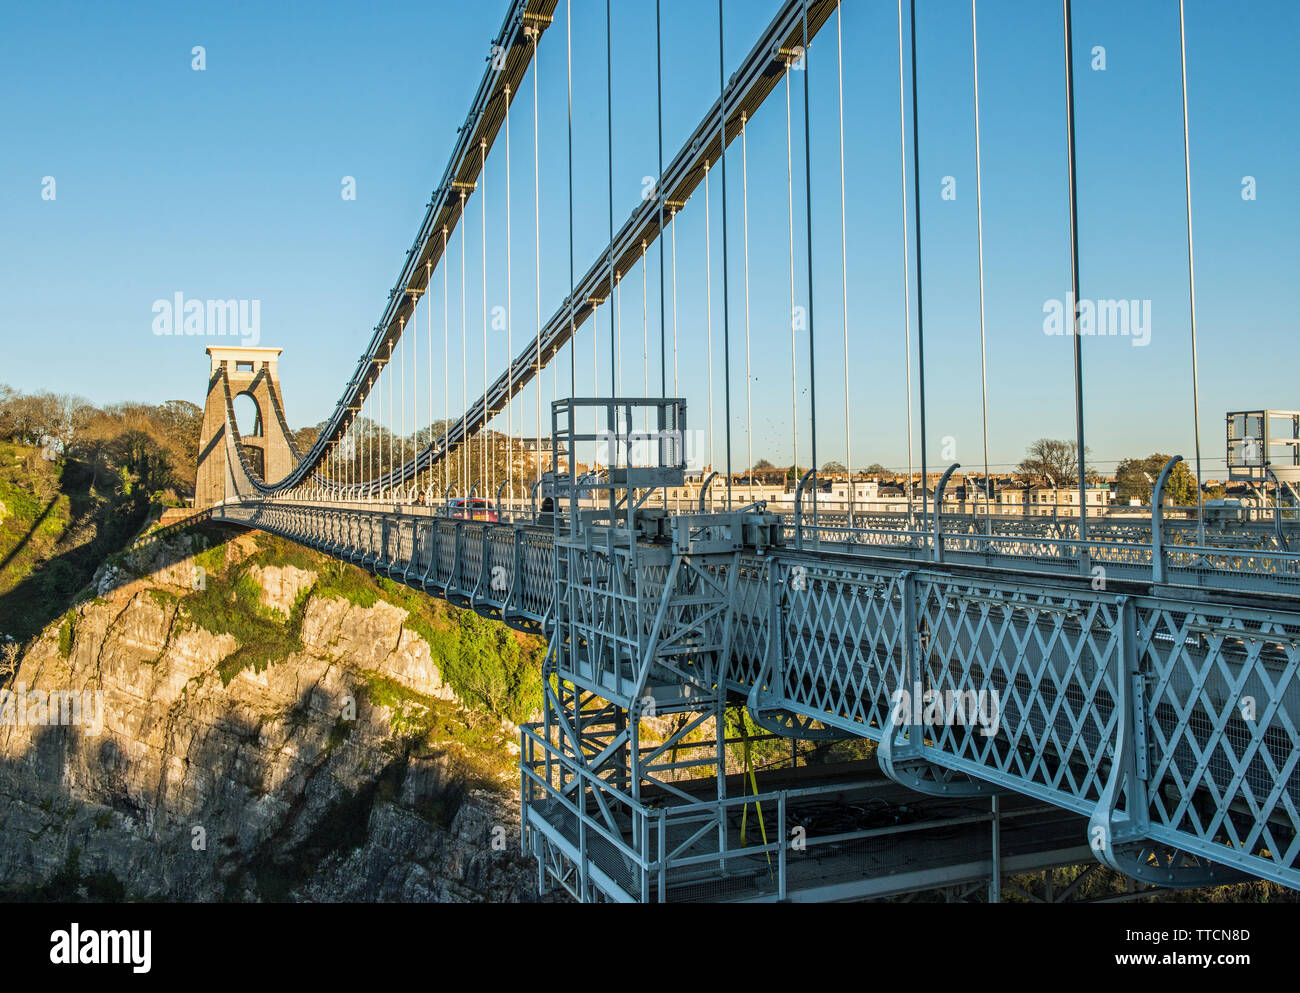 Clifton Suspension Bridge over the Clifton Gorge in Bristol in the West of England Stock Photo